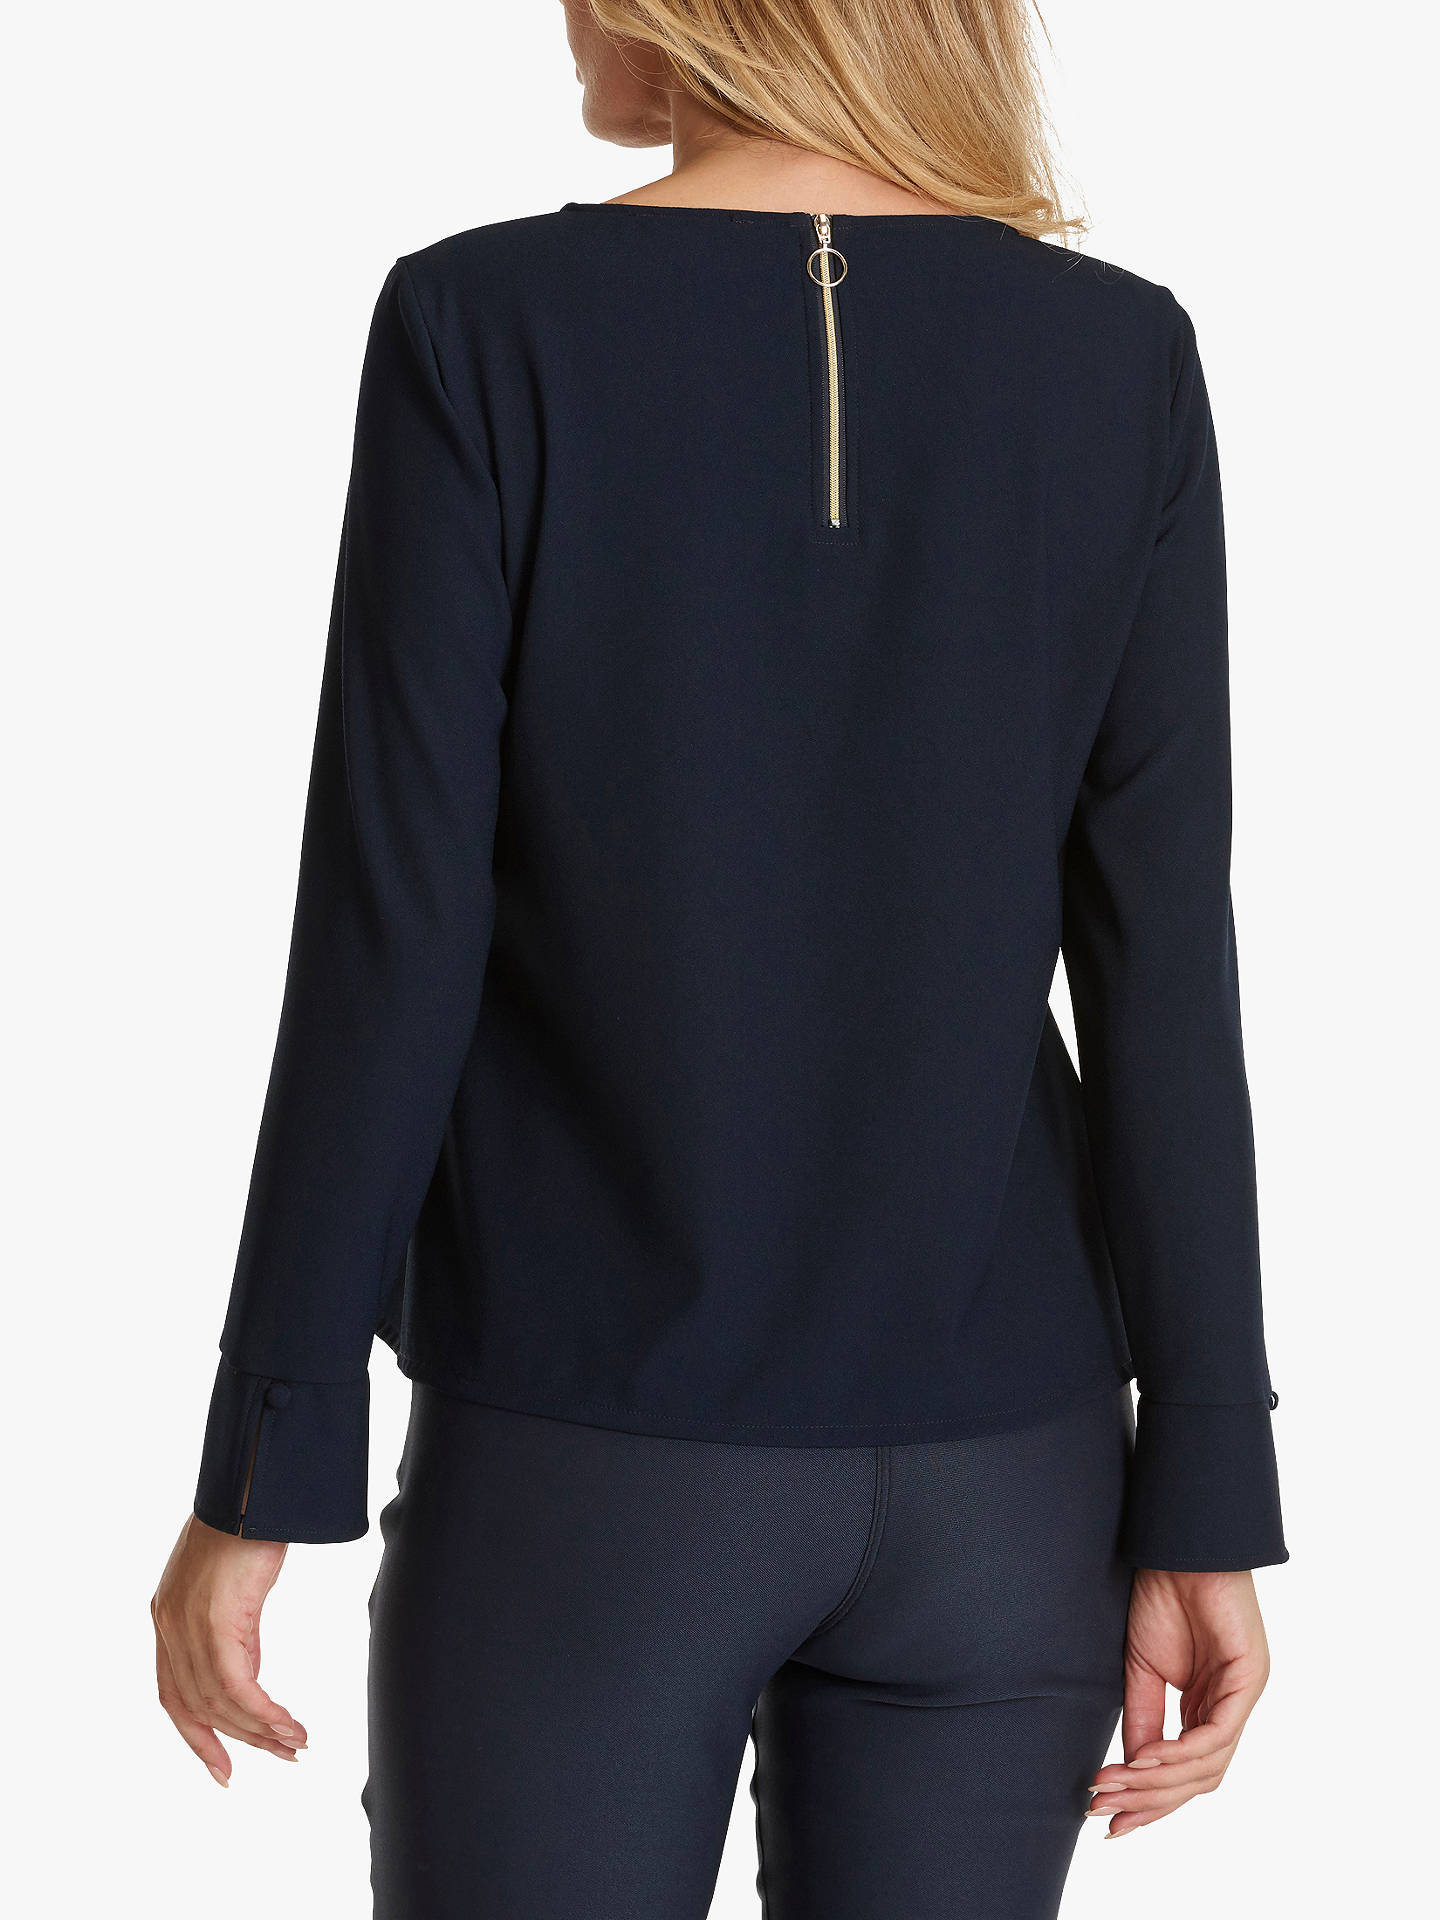 BuyBetty Barclay Crepe Blouse, Dark Sky, 10 Online at johnlewis.com